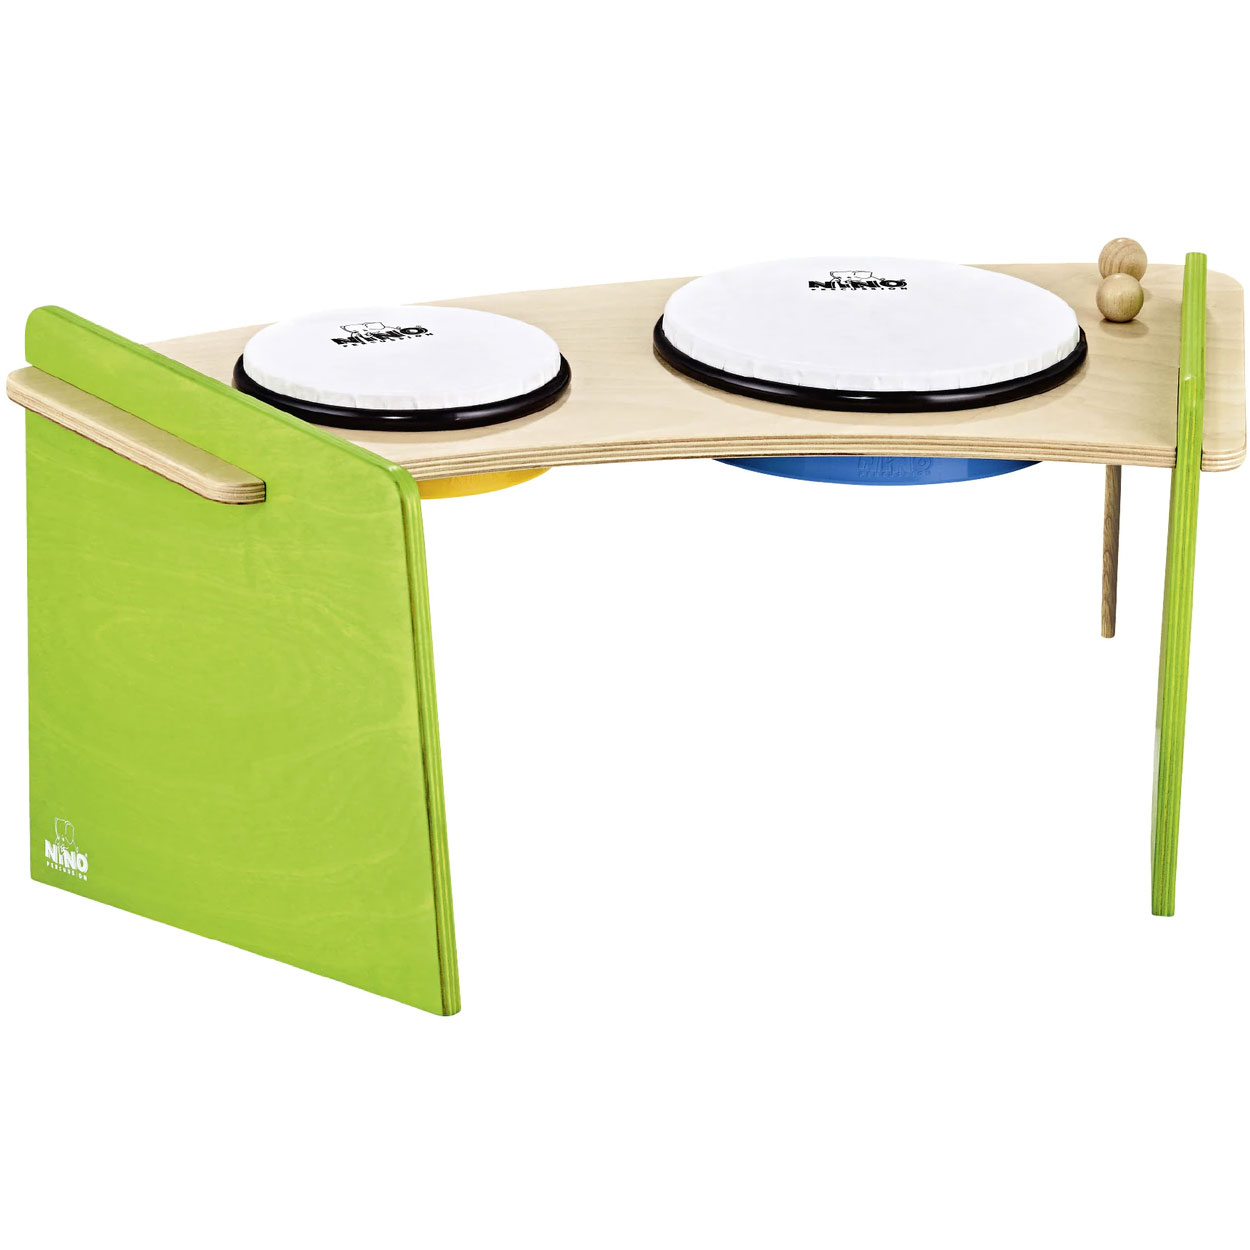 Meinl Nino Hand Drum Pair with Stand